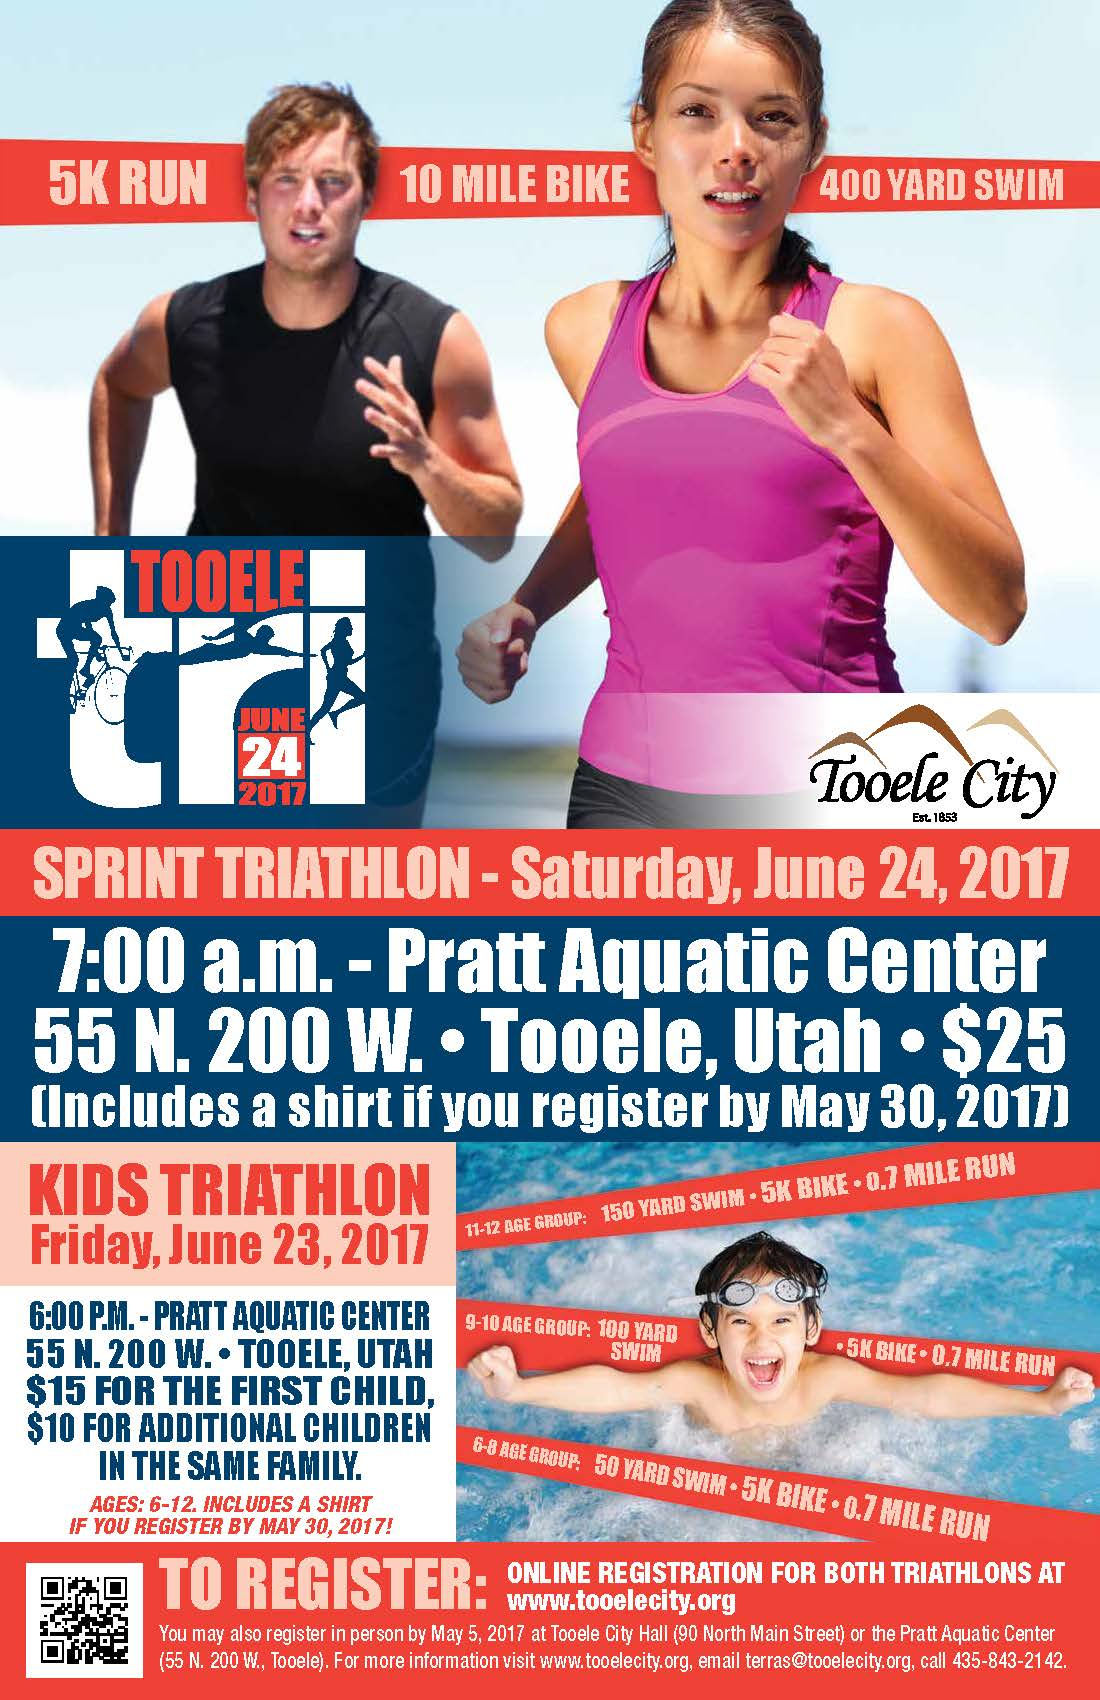 Tooele Tri:  Kids Triathlon 2017 @ Pratt Aquatic Center | Tooele | Utah | United States